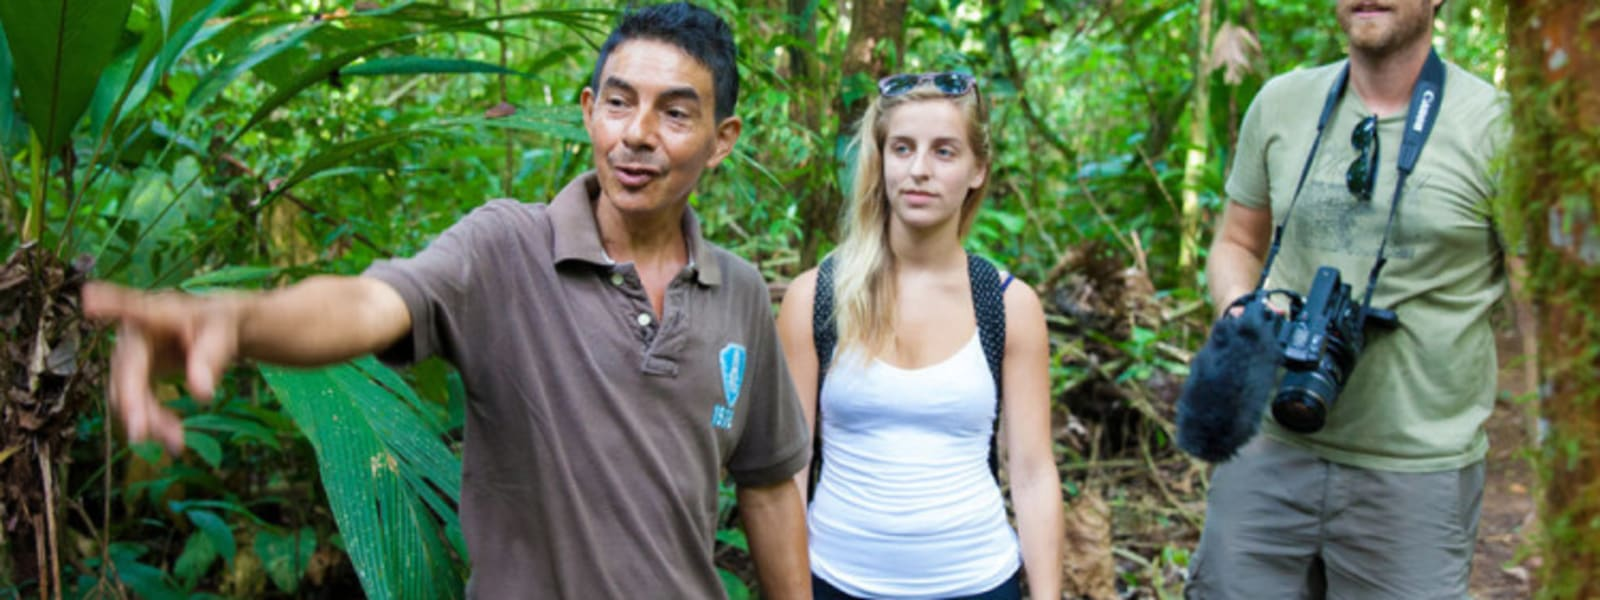 Lokal Travel Presents The Ultimate Sustainable Travel And Adventure Trip